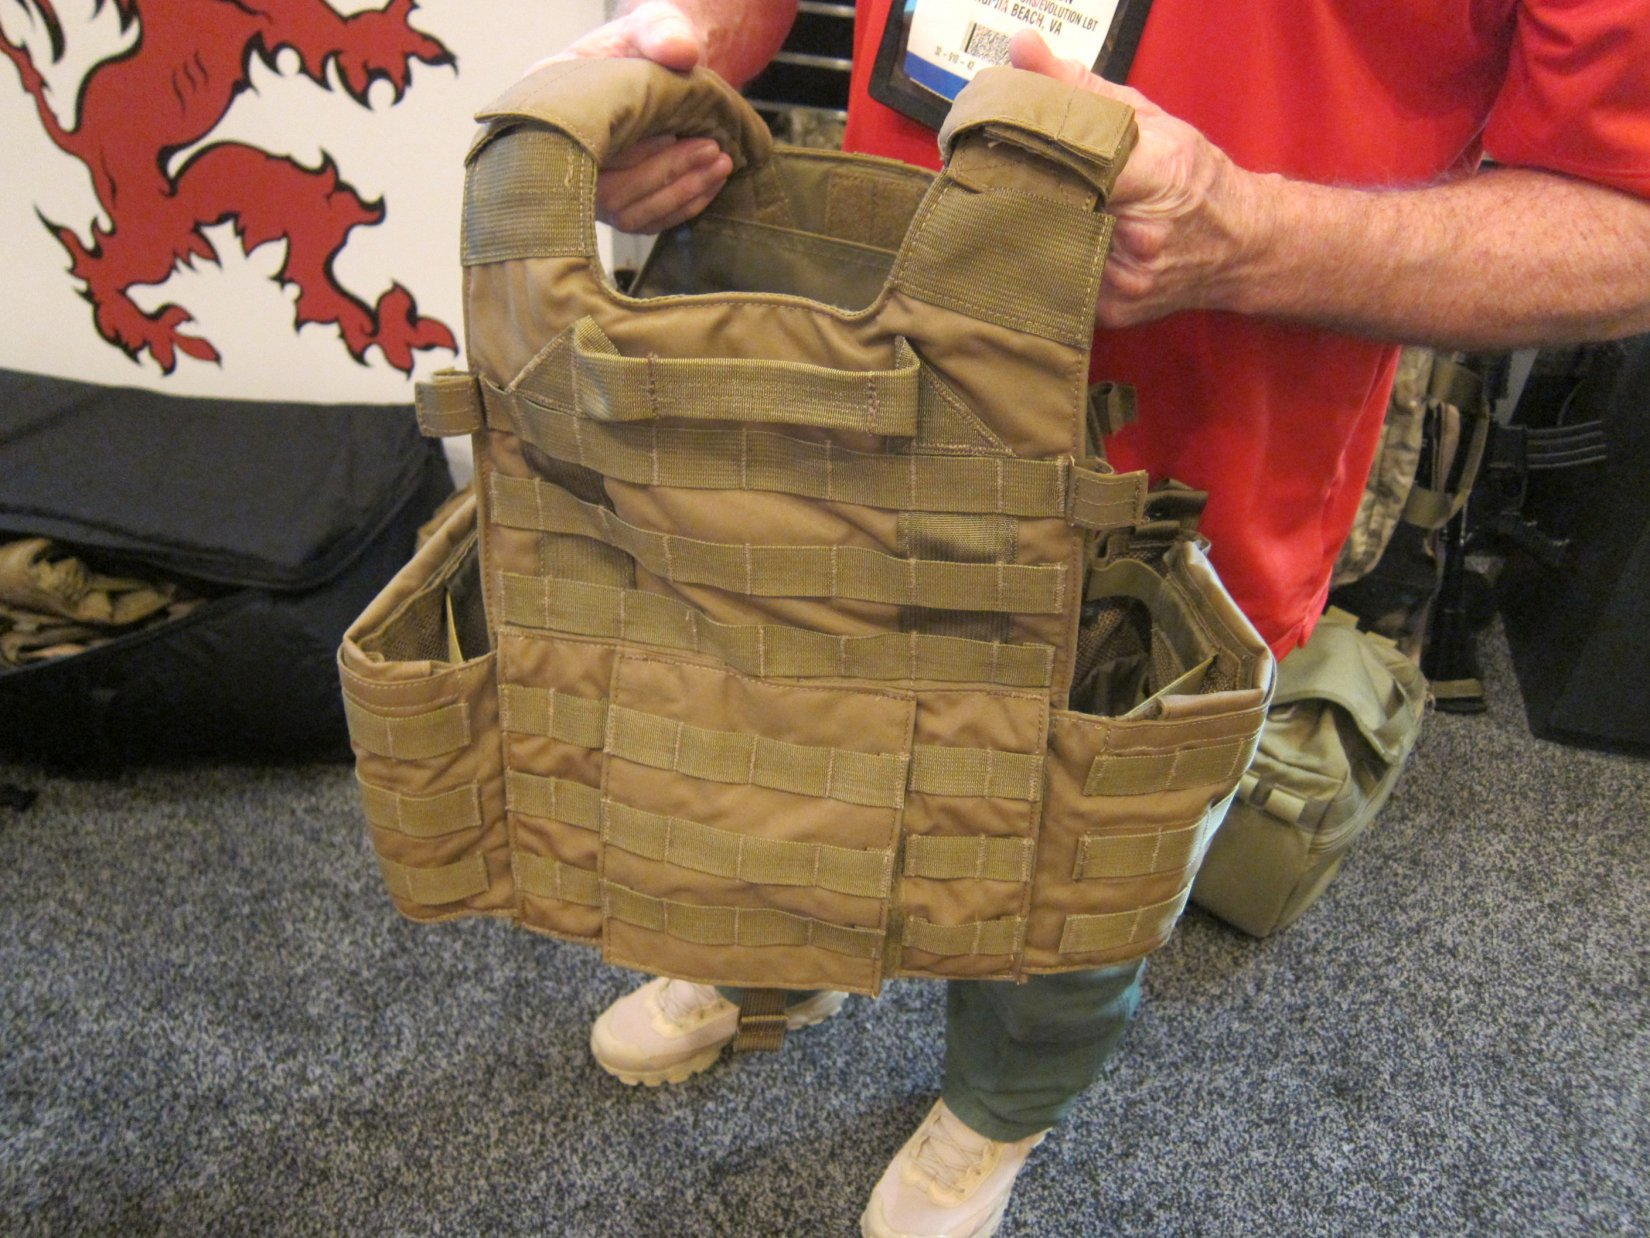 London Bridge Trading LBT Sentinel Releasable Plate Carrier RPC System Quick Release Tactical Armor Plate Carrier Mike Thompson SHOT Show 2012 DefenseReview.com DR 3 London Bridge Trading (LBT) Modular Sentinel Releasable Plate Carrier (RPC) Tactical Armor Carrier/Vest with Quick Release Assault Panel (QRAP) and Kangaroo Pouch Mag Carrier Insert